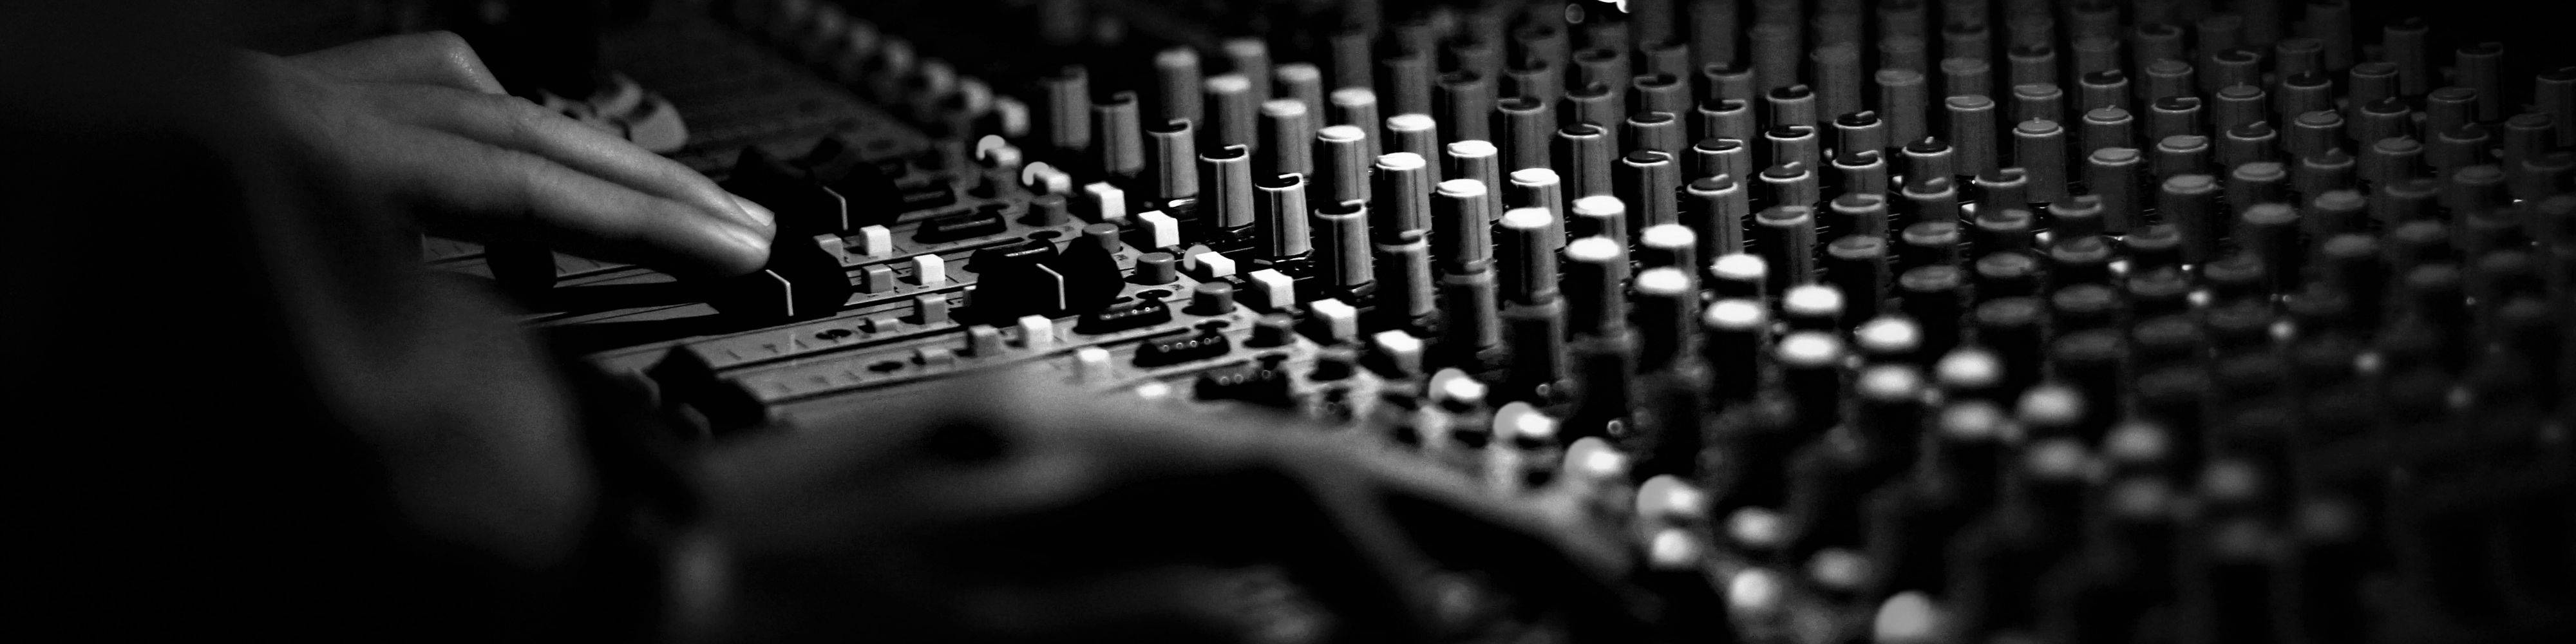 Two hands on a mixing desk